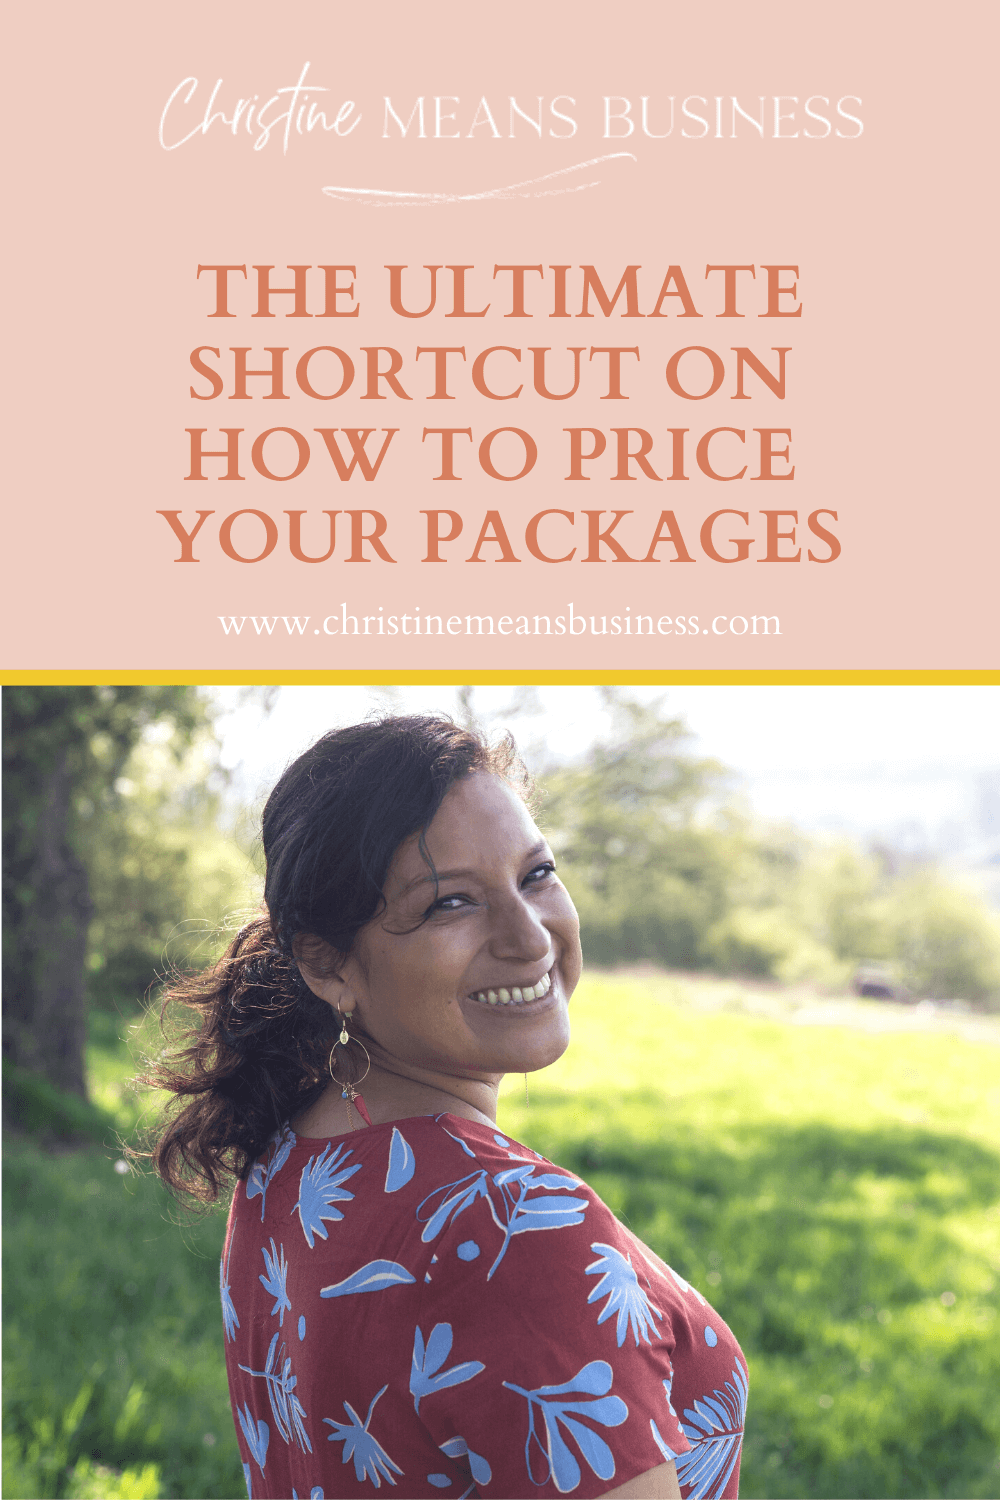 The ultimate shortcut on how to price your packages